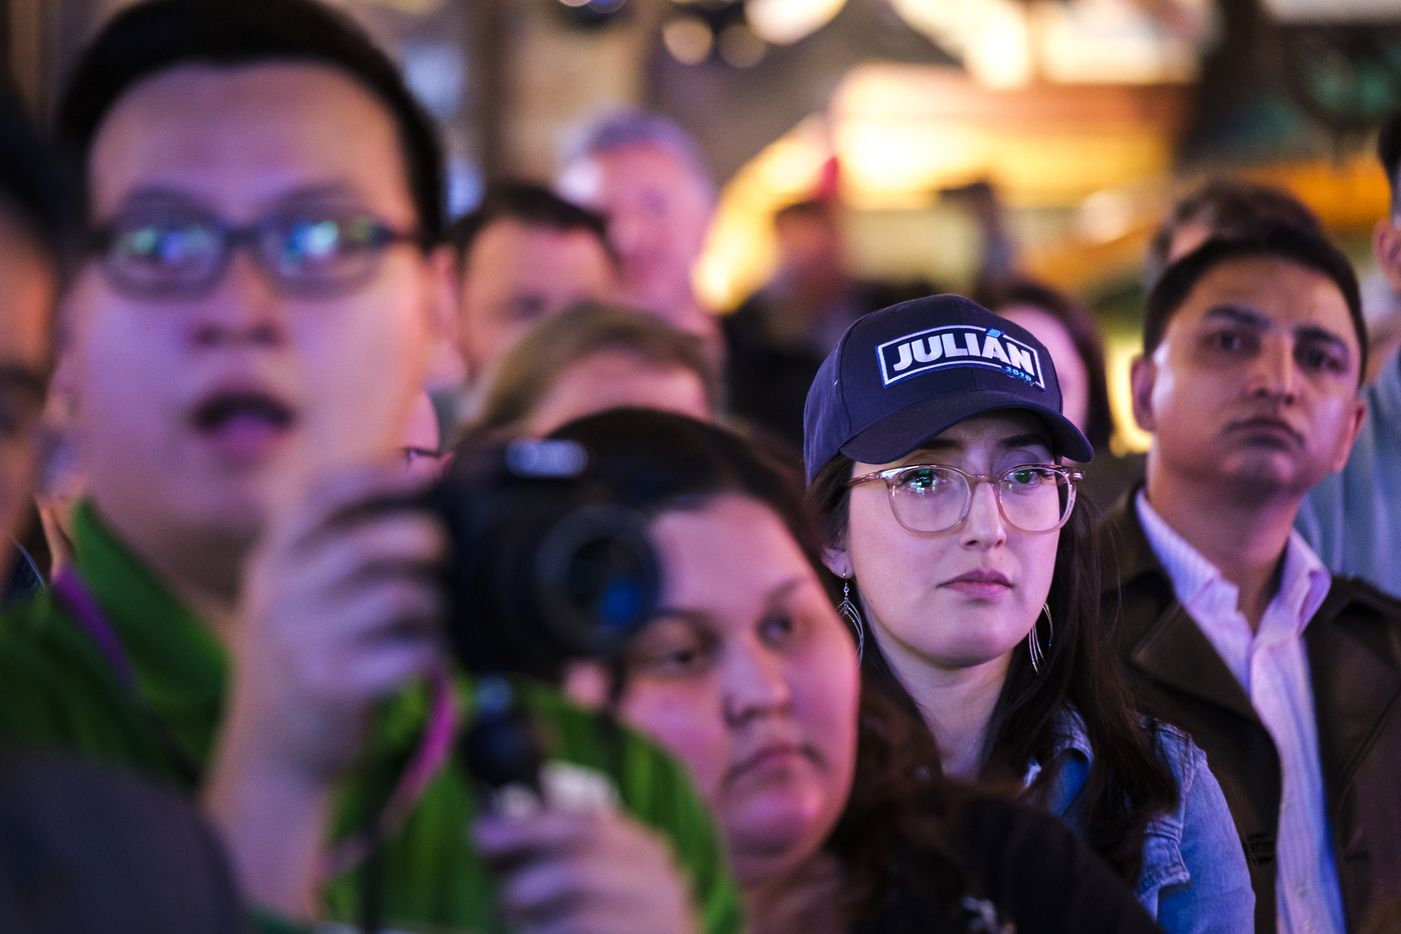 Supporters listen as Presidential candidate Julian Castro speaks during a campaign event at St. Pete's Dancing Marlin in on Tuesday, March 19, 2019.